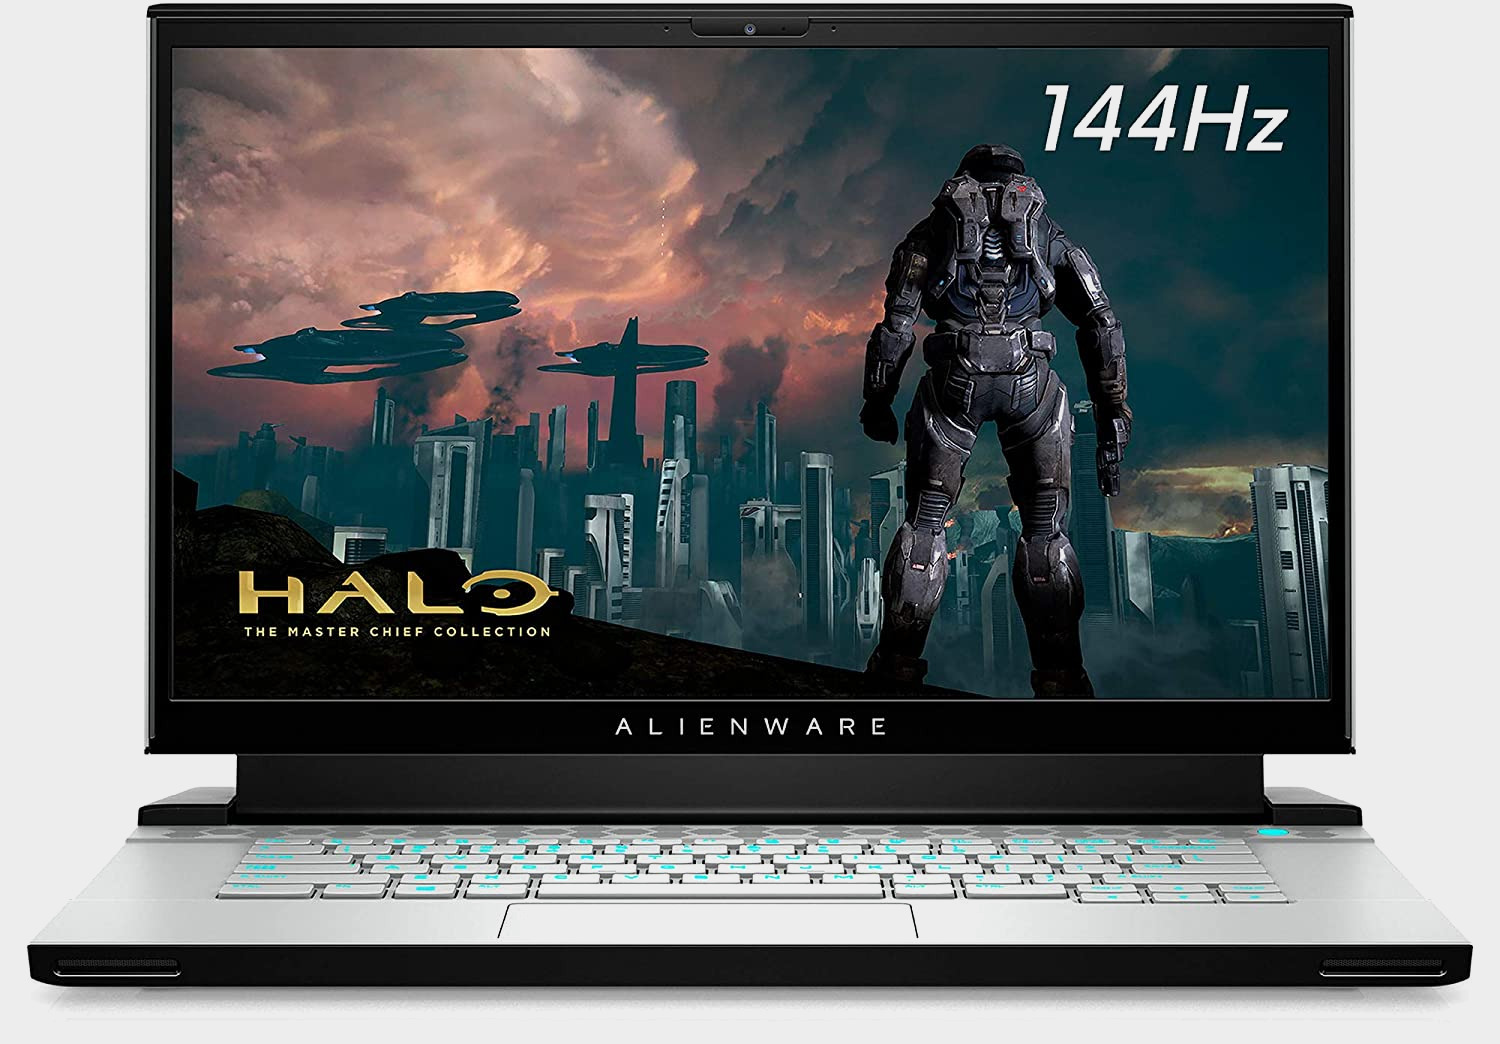 Alienware m15 R3 | Core i7-10750H | RTX 2060 | $1,314.98 (save $335.02)